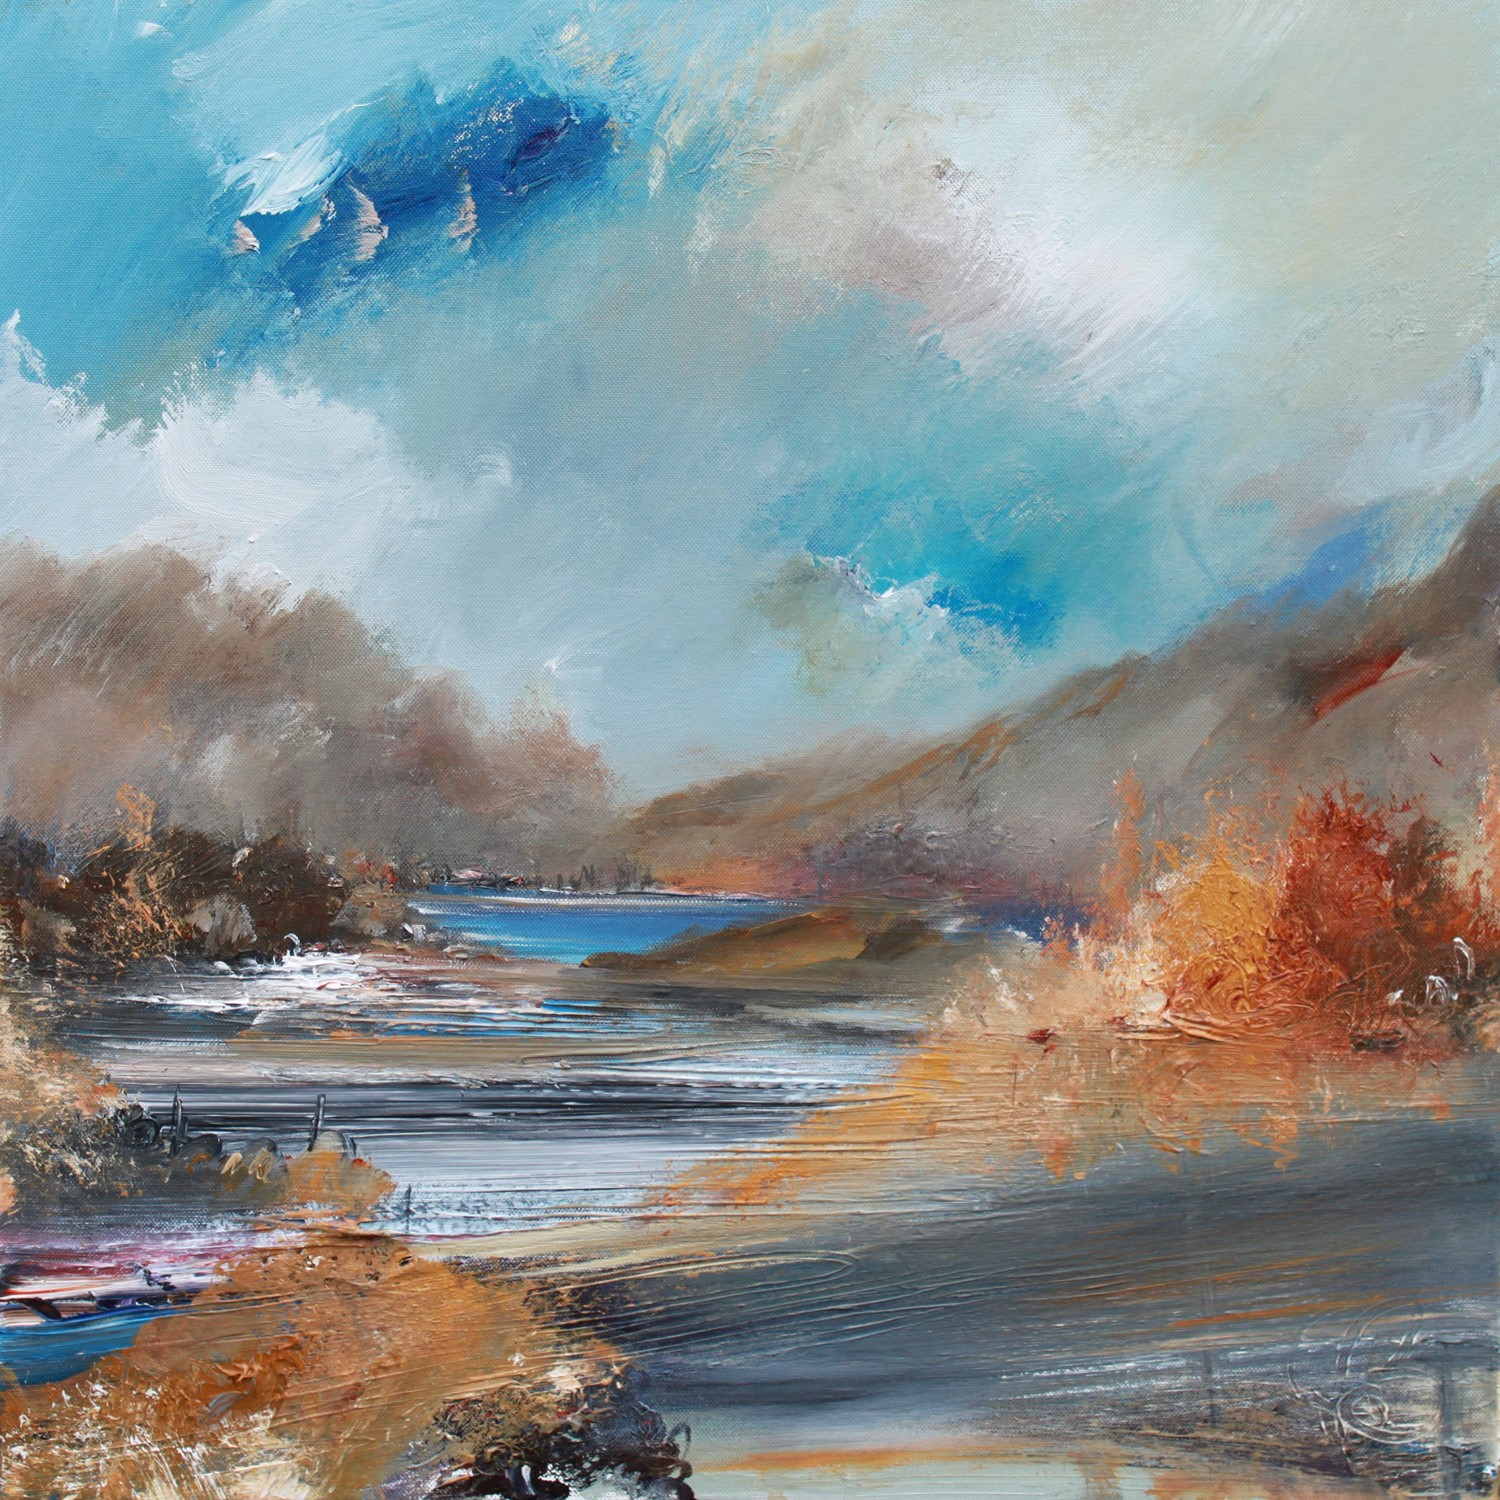 'Autumn at the River' by artist Rosanne Barr